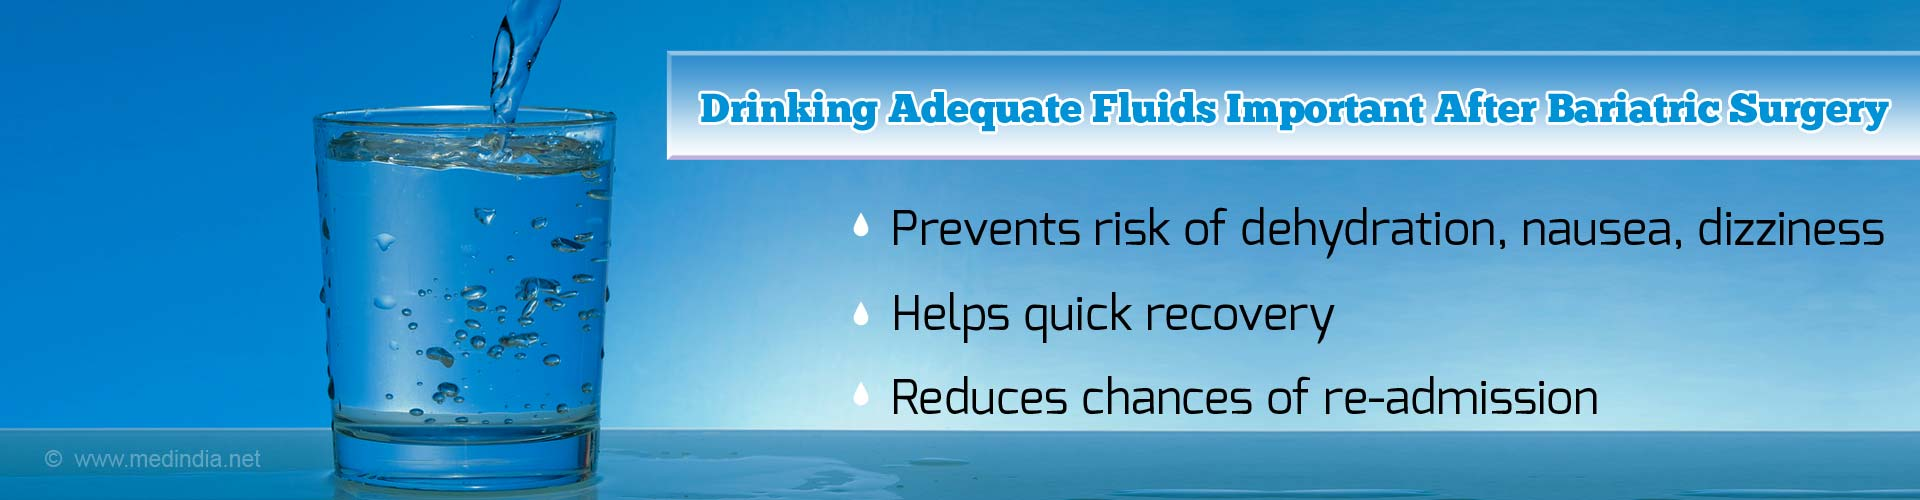 Drinking adequate fluids post bariatric surgery